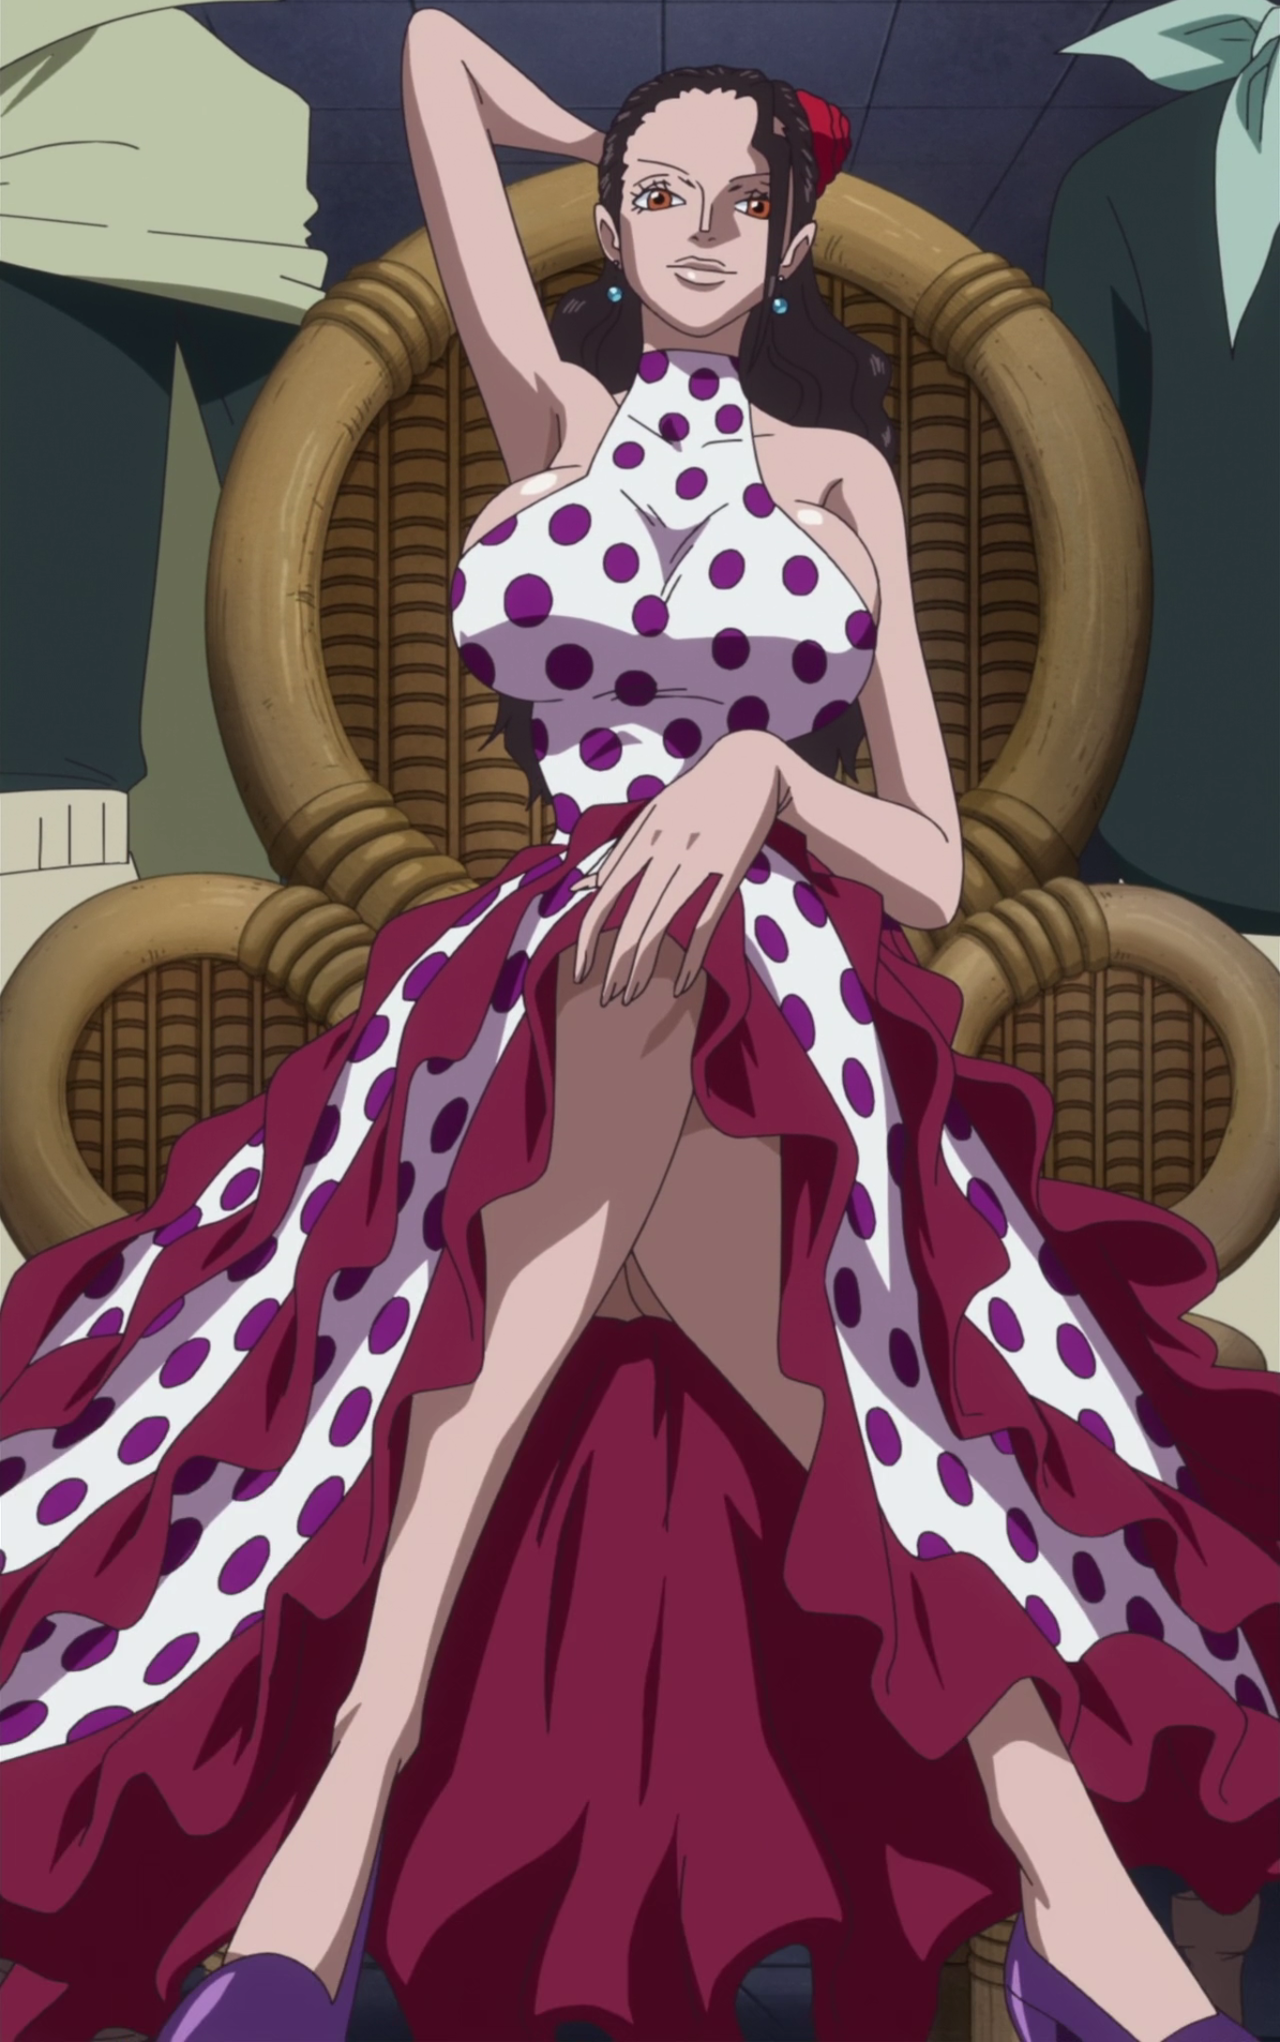 http://img2.wikia.nocookie.net/__cb20140209102710/onepiece/images/d/d7/Viola_Anime_Infobox.png